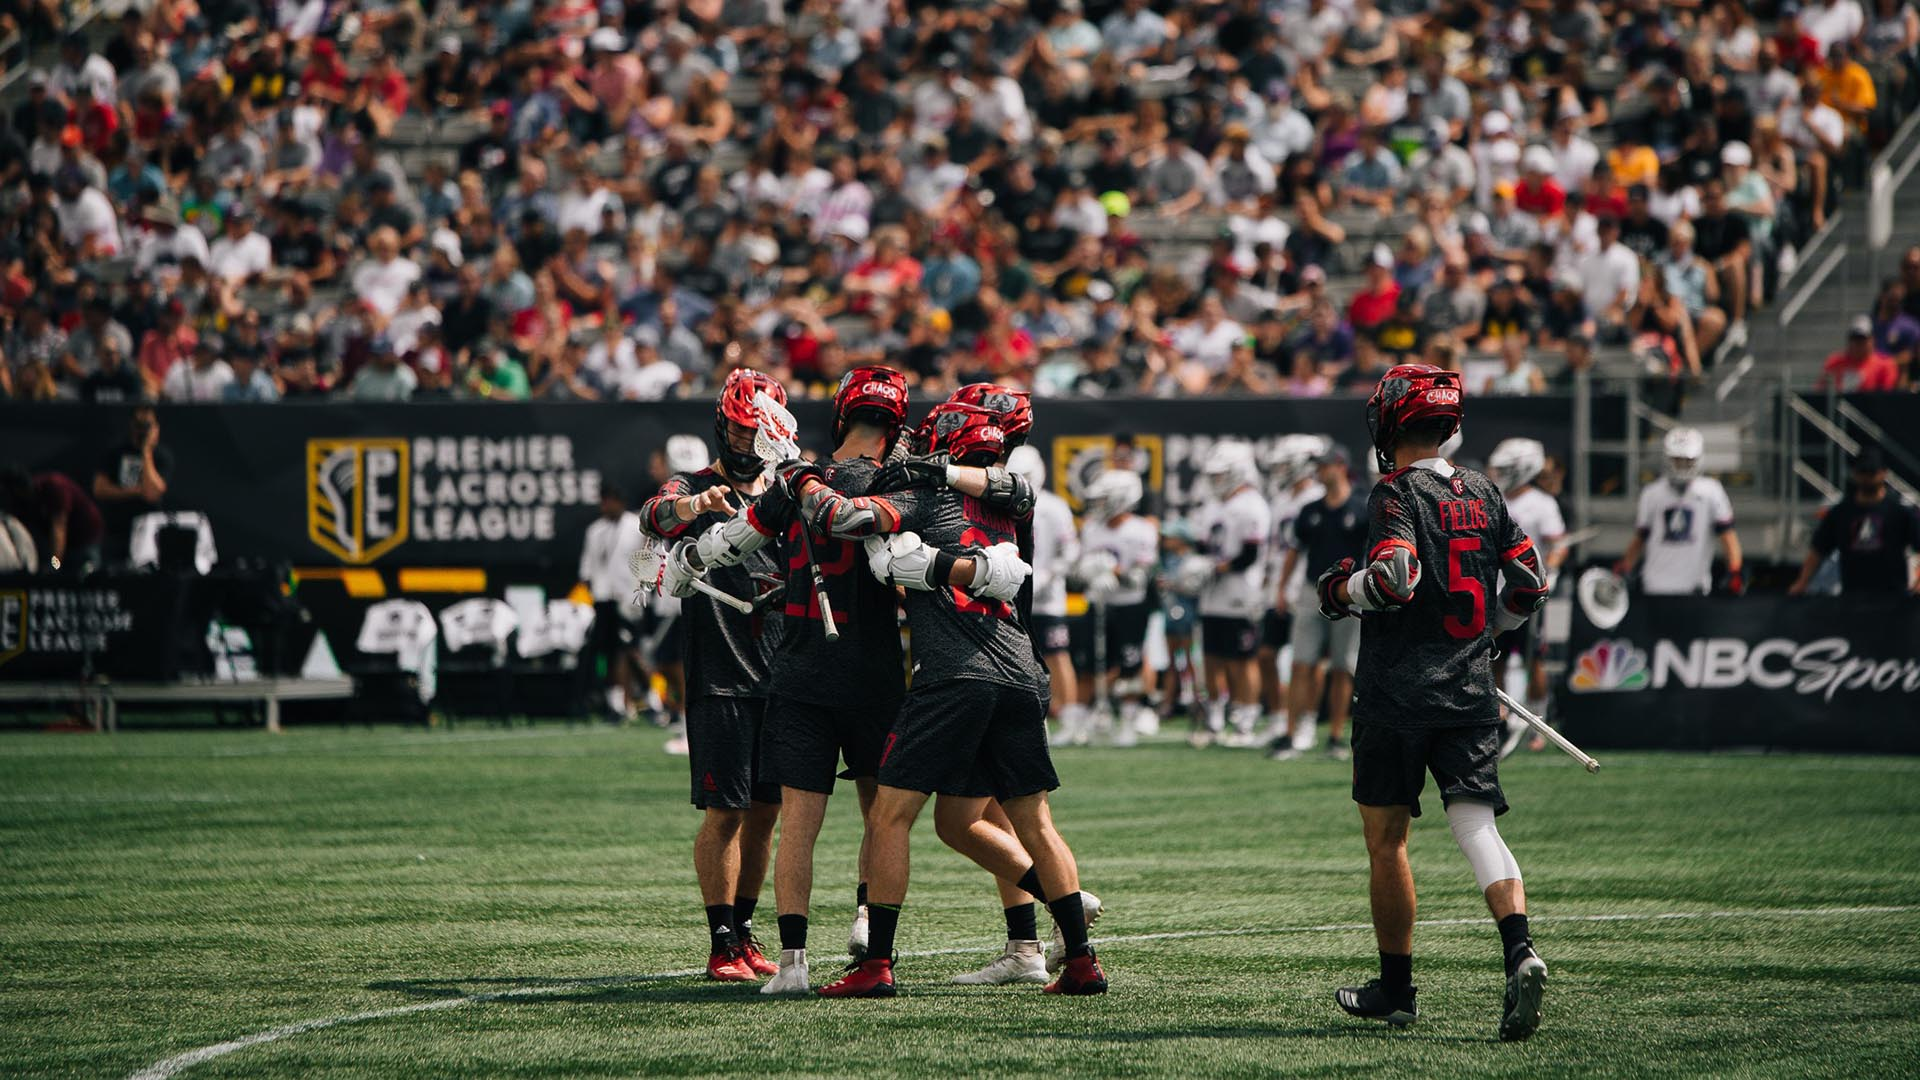 Premier Lacrosse League highlights: Chaos 11, Archers 10 (OT)